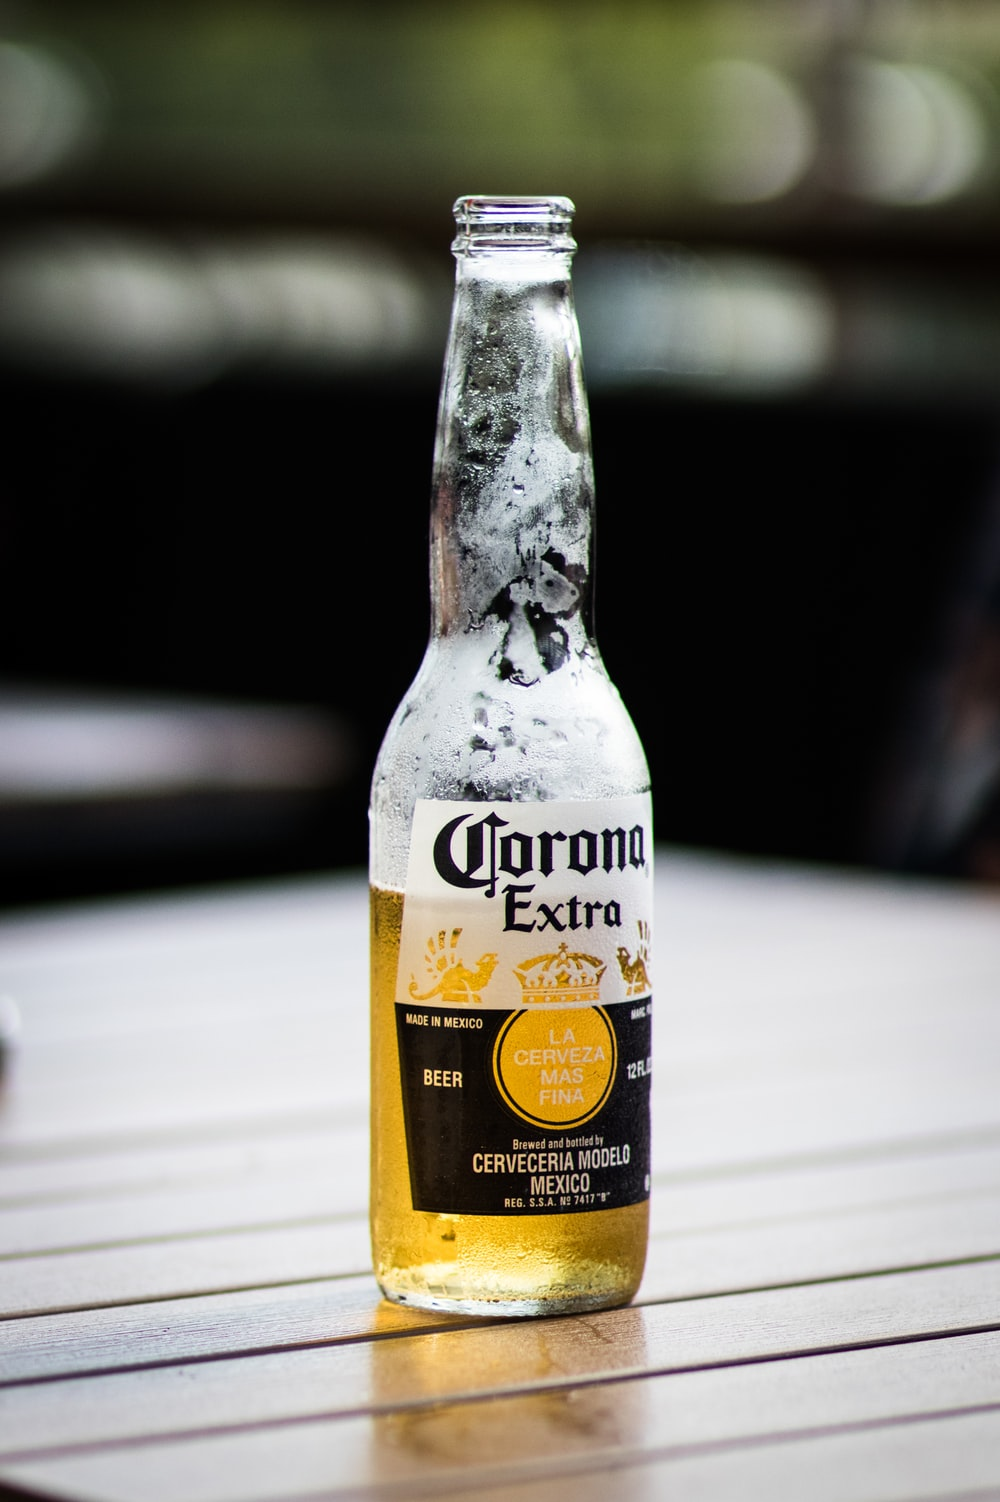 Corona Extra beer bottle on brown wooden surface during daytime